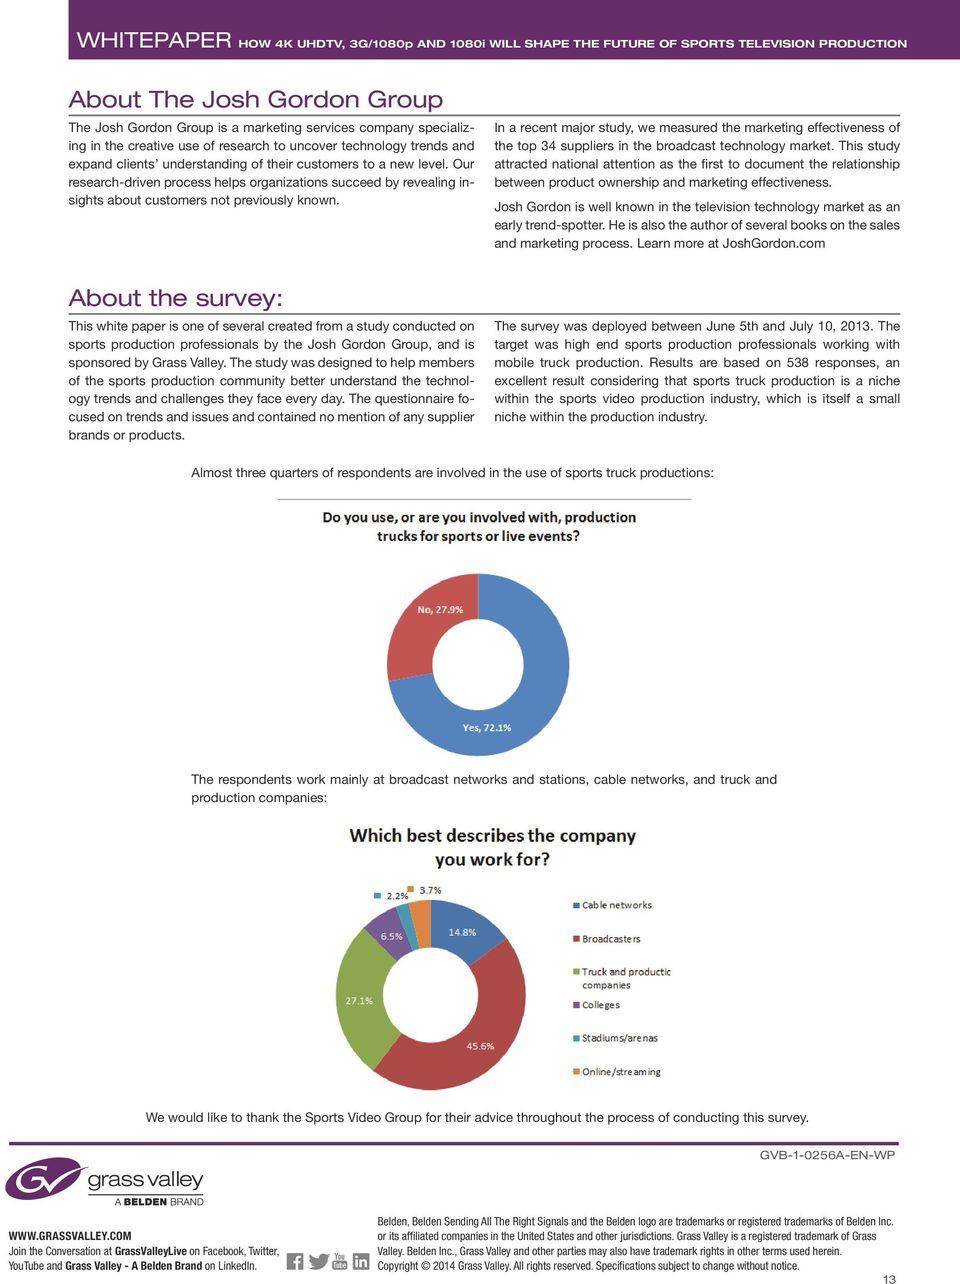 About the survey: This white paper is one of several created from a study conducted on sports production professionals by the Josh Gordon Group, and is sponsored by Grass Valley.